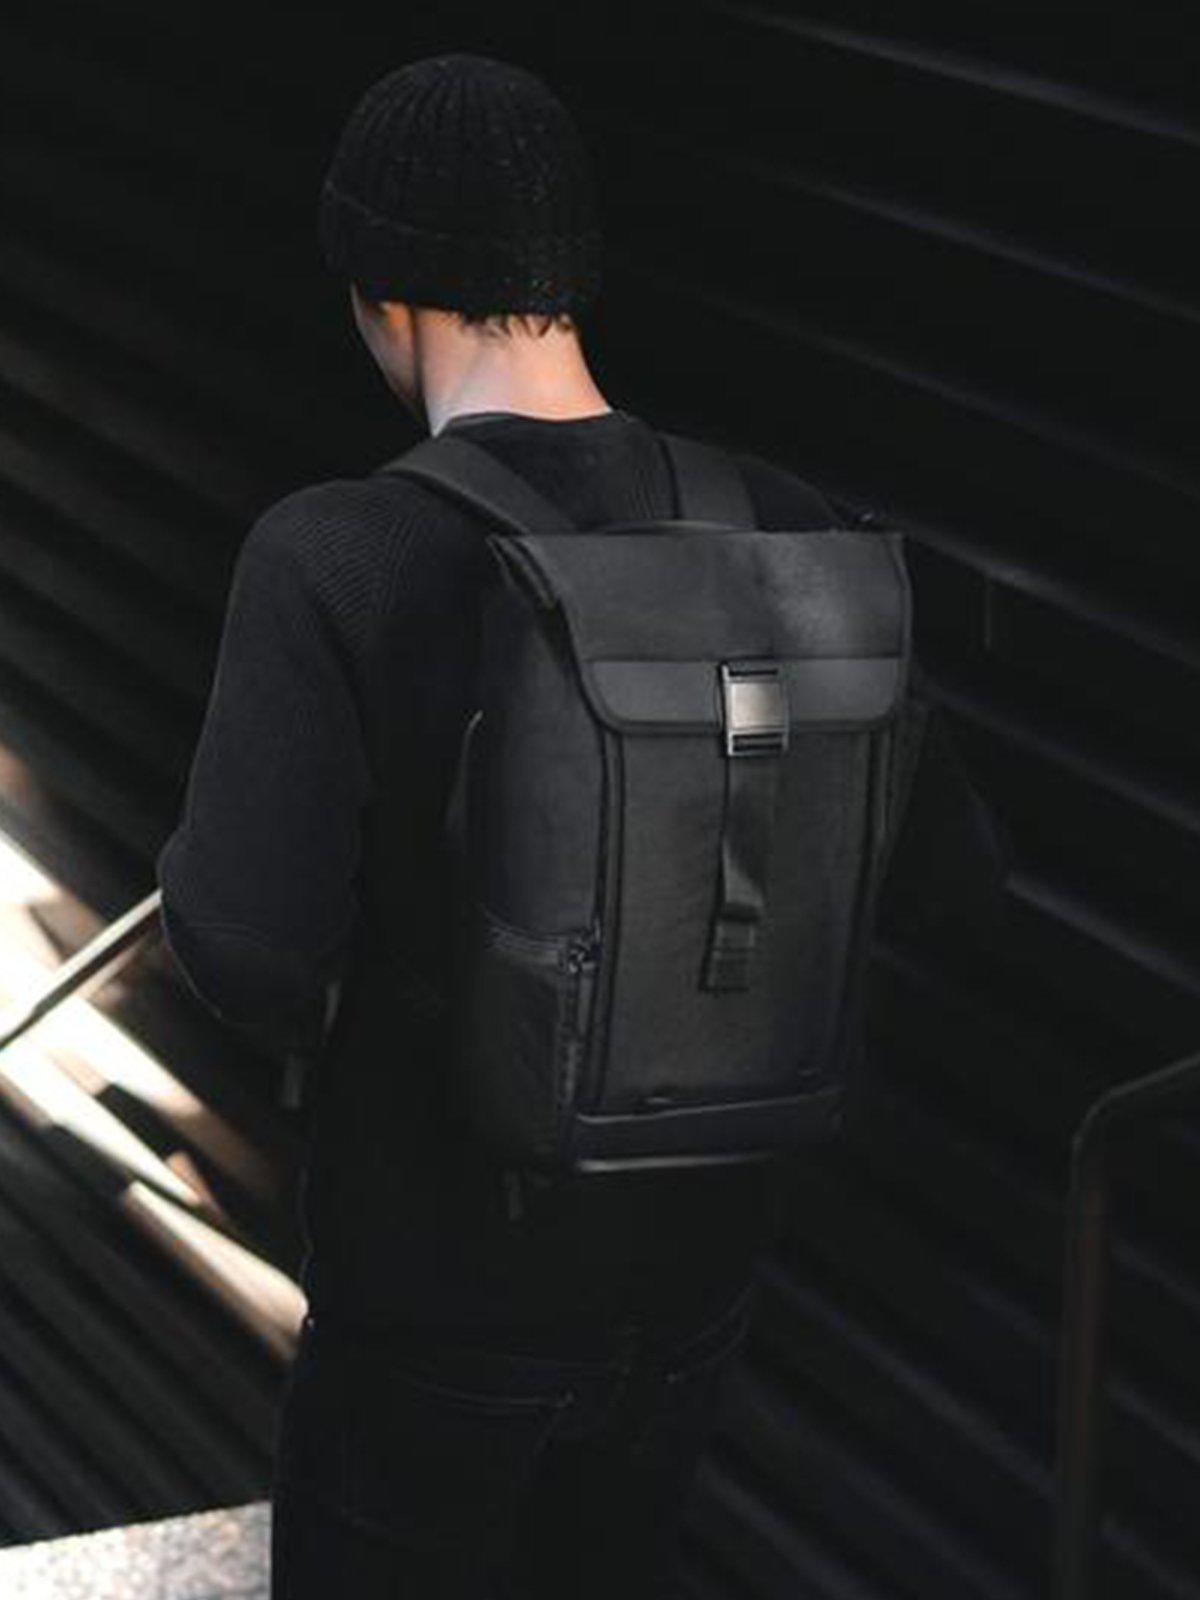 Modern Dayfarer DAYFARER Backpack Black - MORE by Morello Indonesia